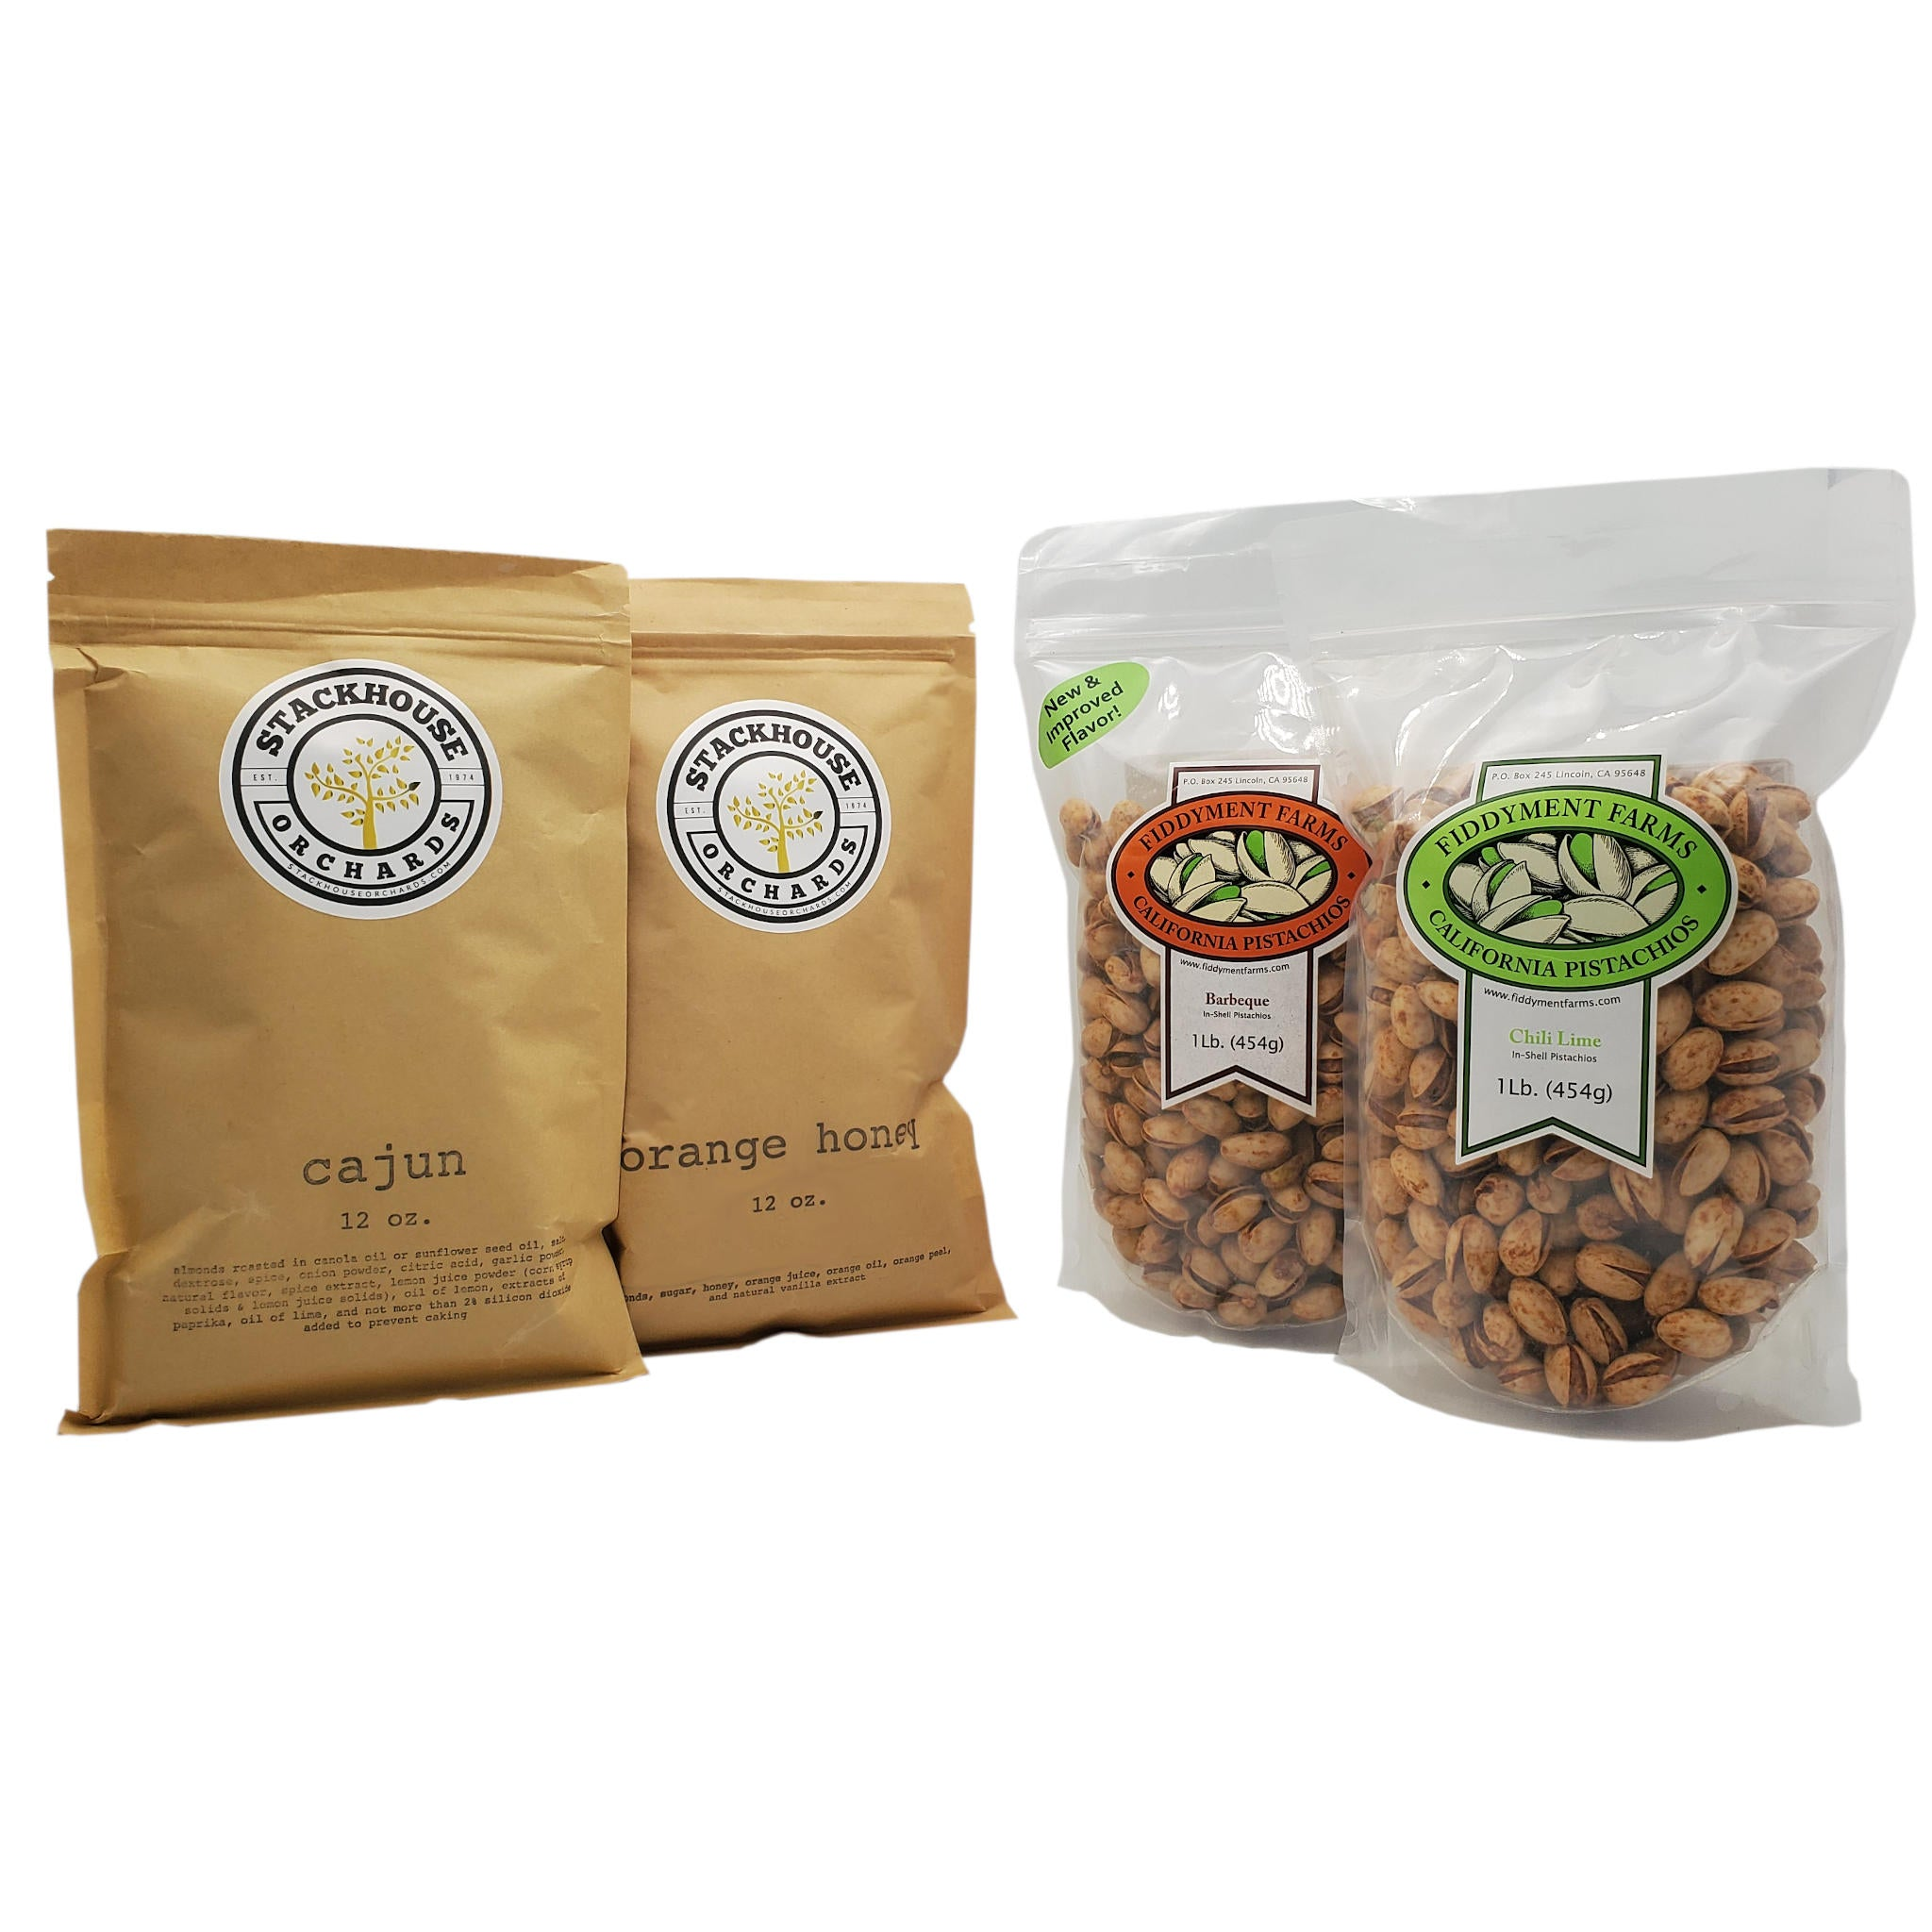 Cajun Spice Almonds 12 oz. bag, Orange Honey Almonds 12 oz. bag, Chili Lime Pistachios 1 lb. bag, Barbeque Pistachios 1 lb. bag